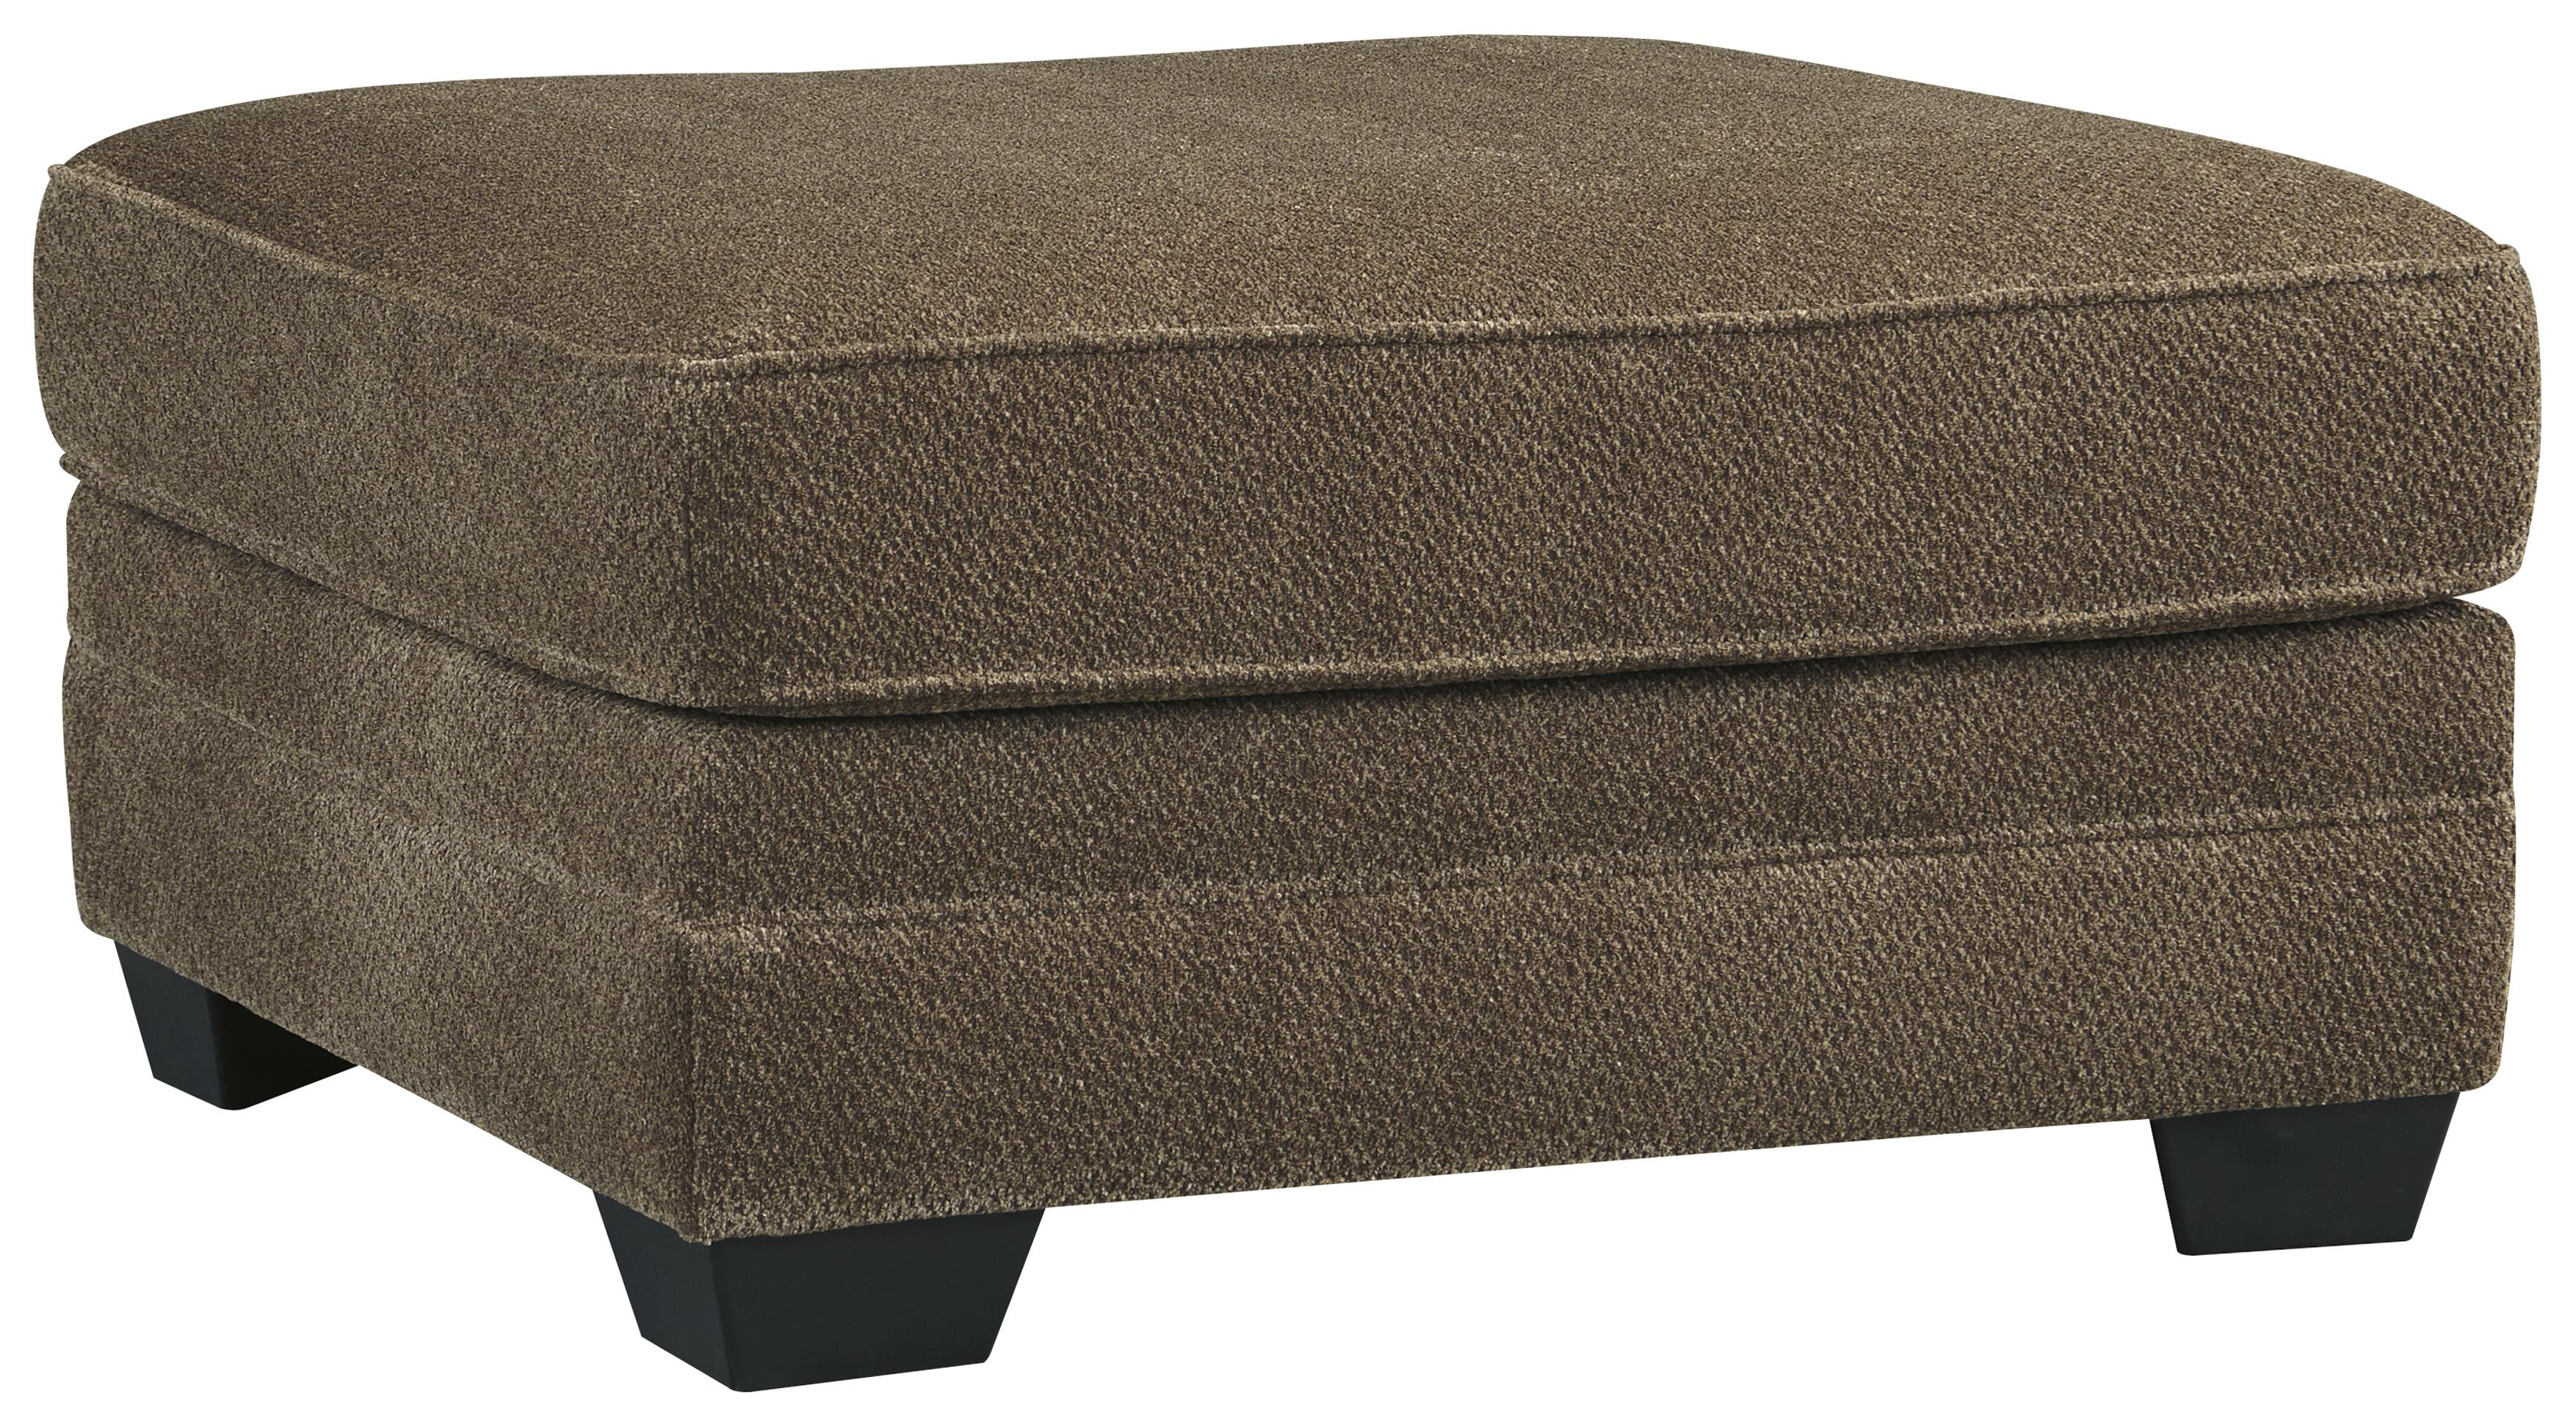 Benchcraft Justyna Oversized Accent Ottoman - Item Number: 8910208